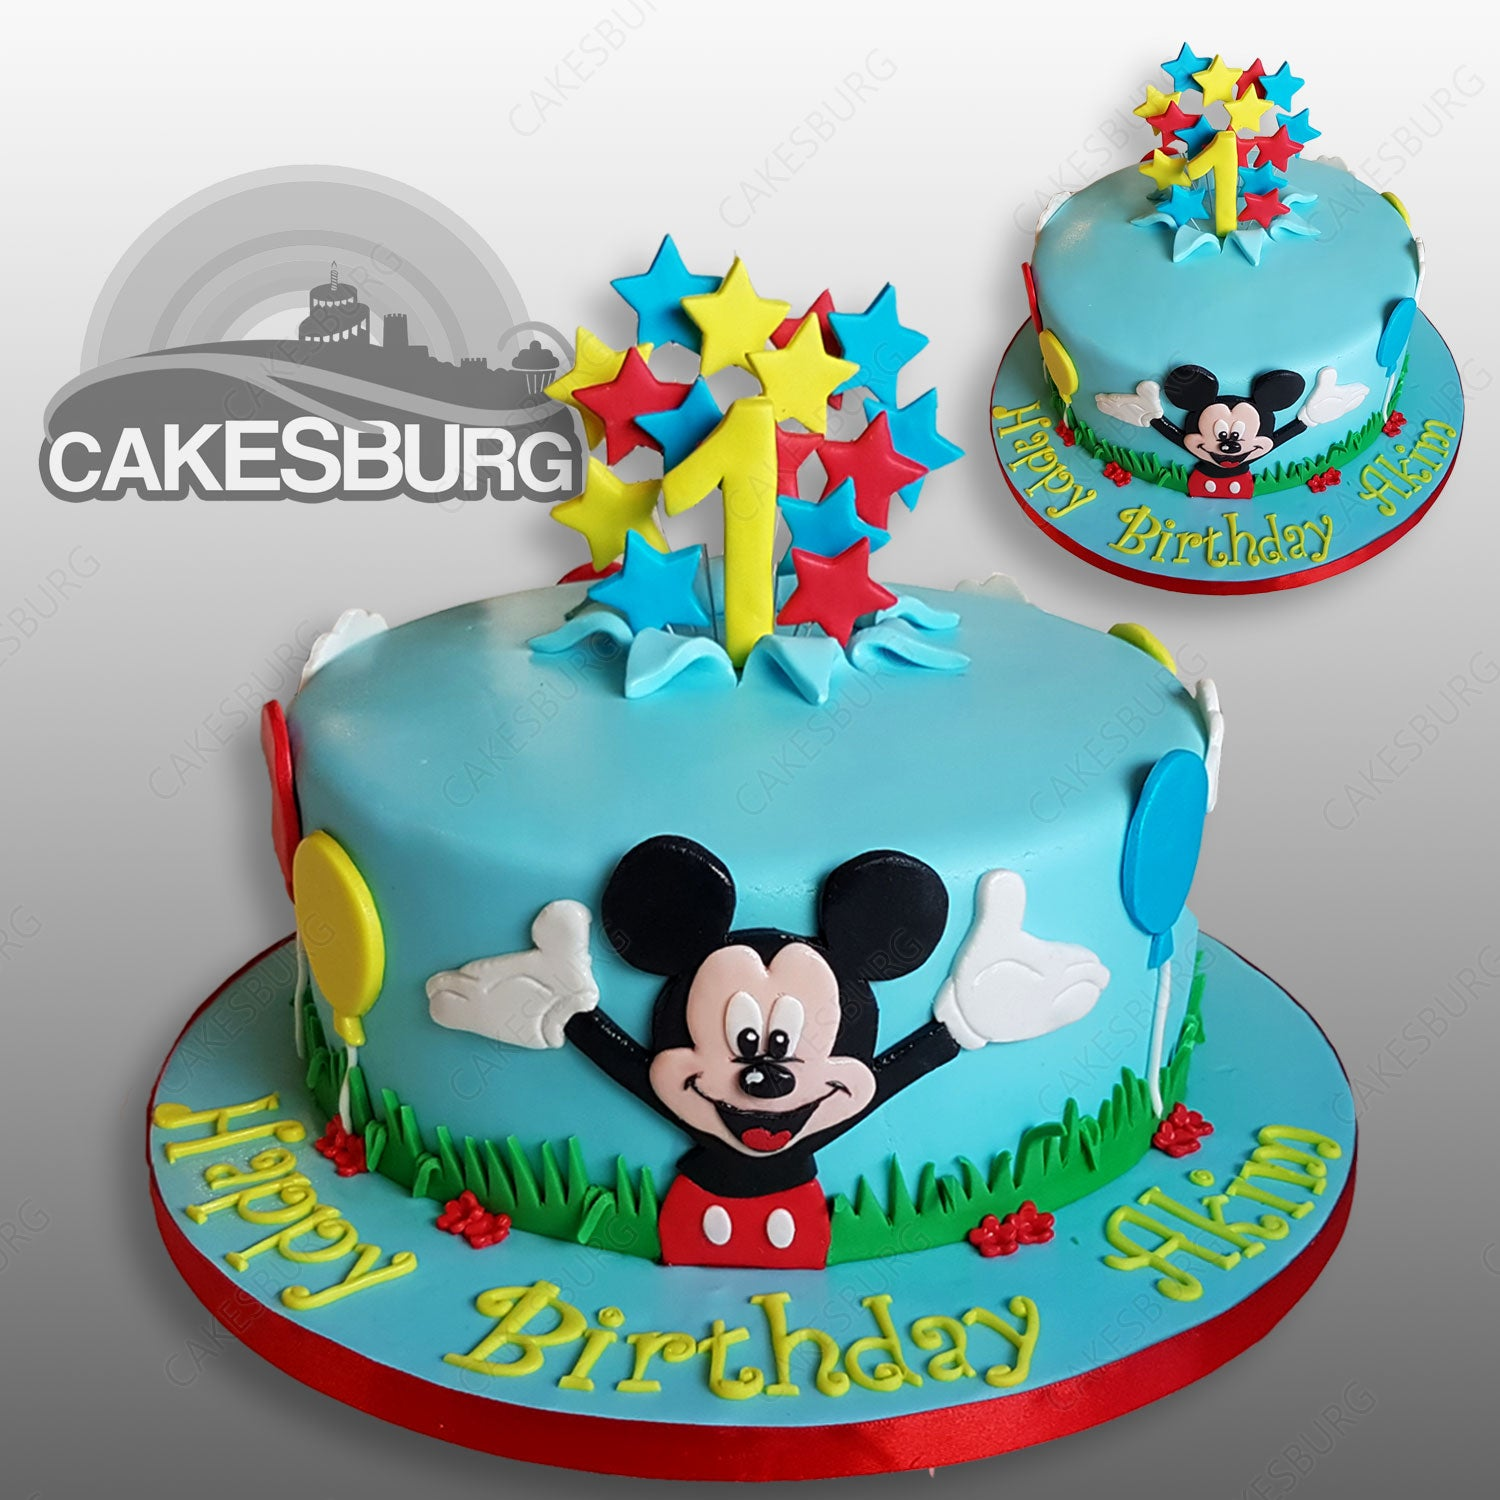 Pleasant Mickey Mouse Cake 1 Cakesburg Online Premium Cake Shop Funny Birthday Cards Online Elaedamsfinfo